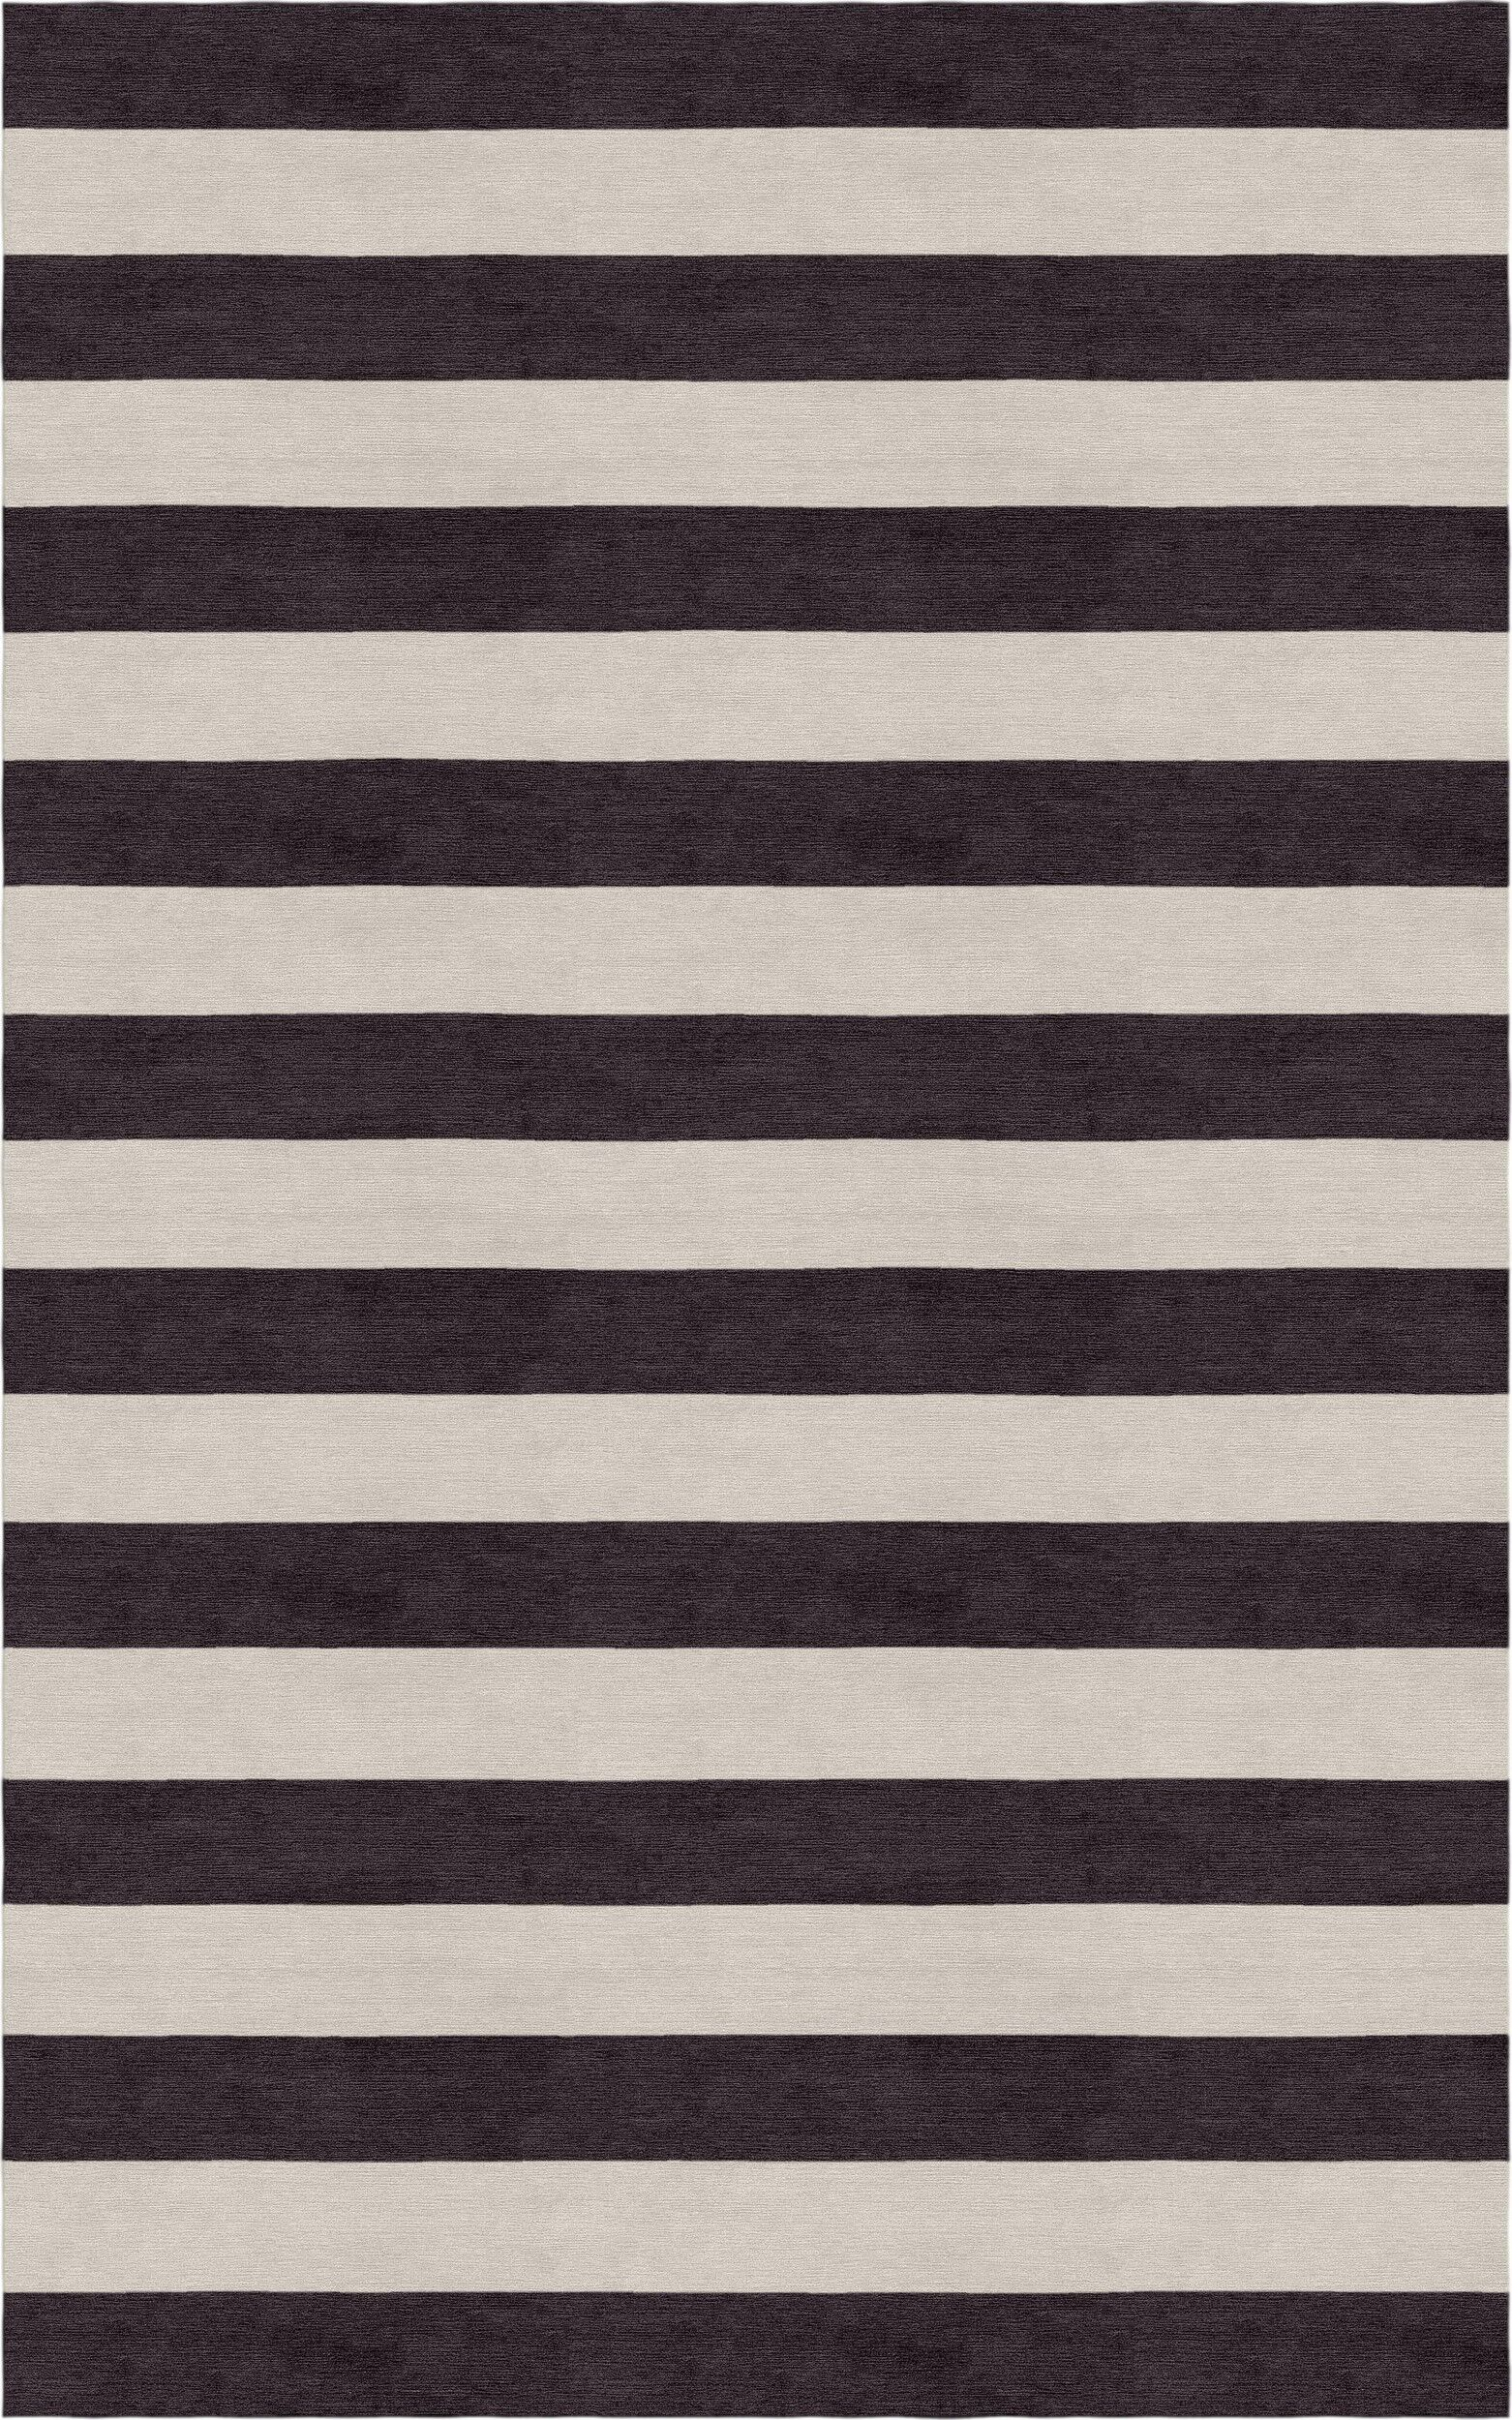 Critchfield Stripe Hand-Tufted Wool Silver/Charcoal Area Rug Rug Size: Rectangle 9' x 12'